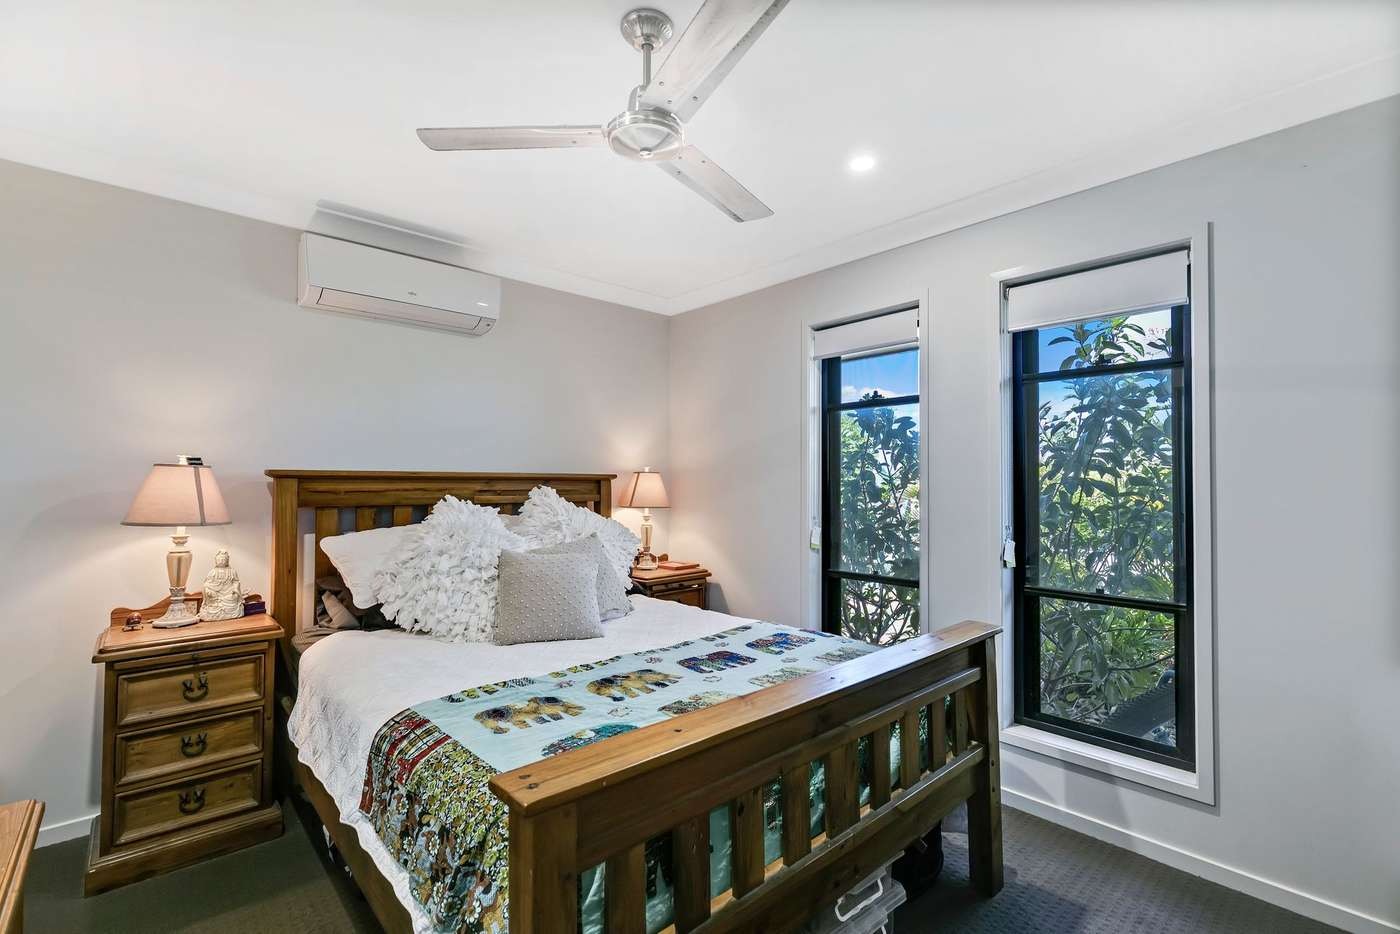 Fifth view of Homely house listing, 26 Kauri Crescent, Peregian Springs QLD 4573